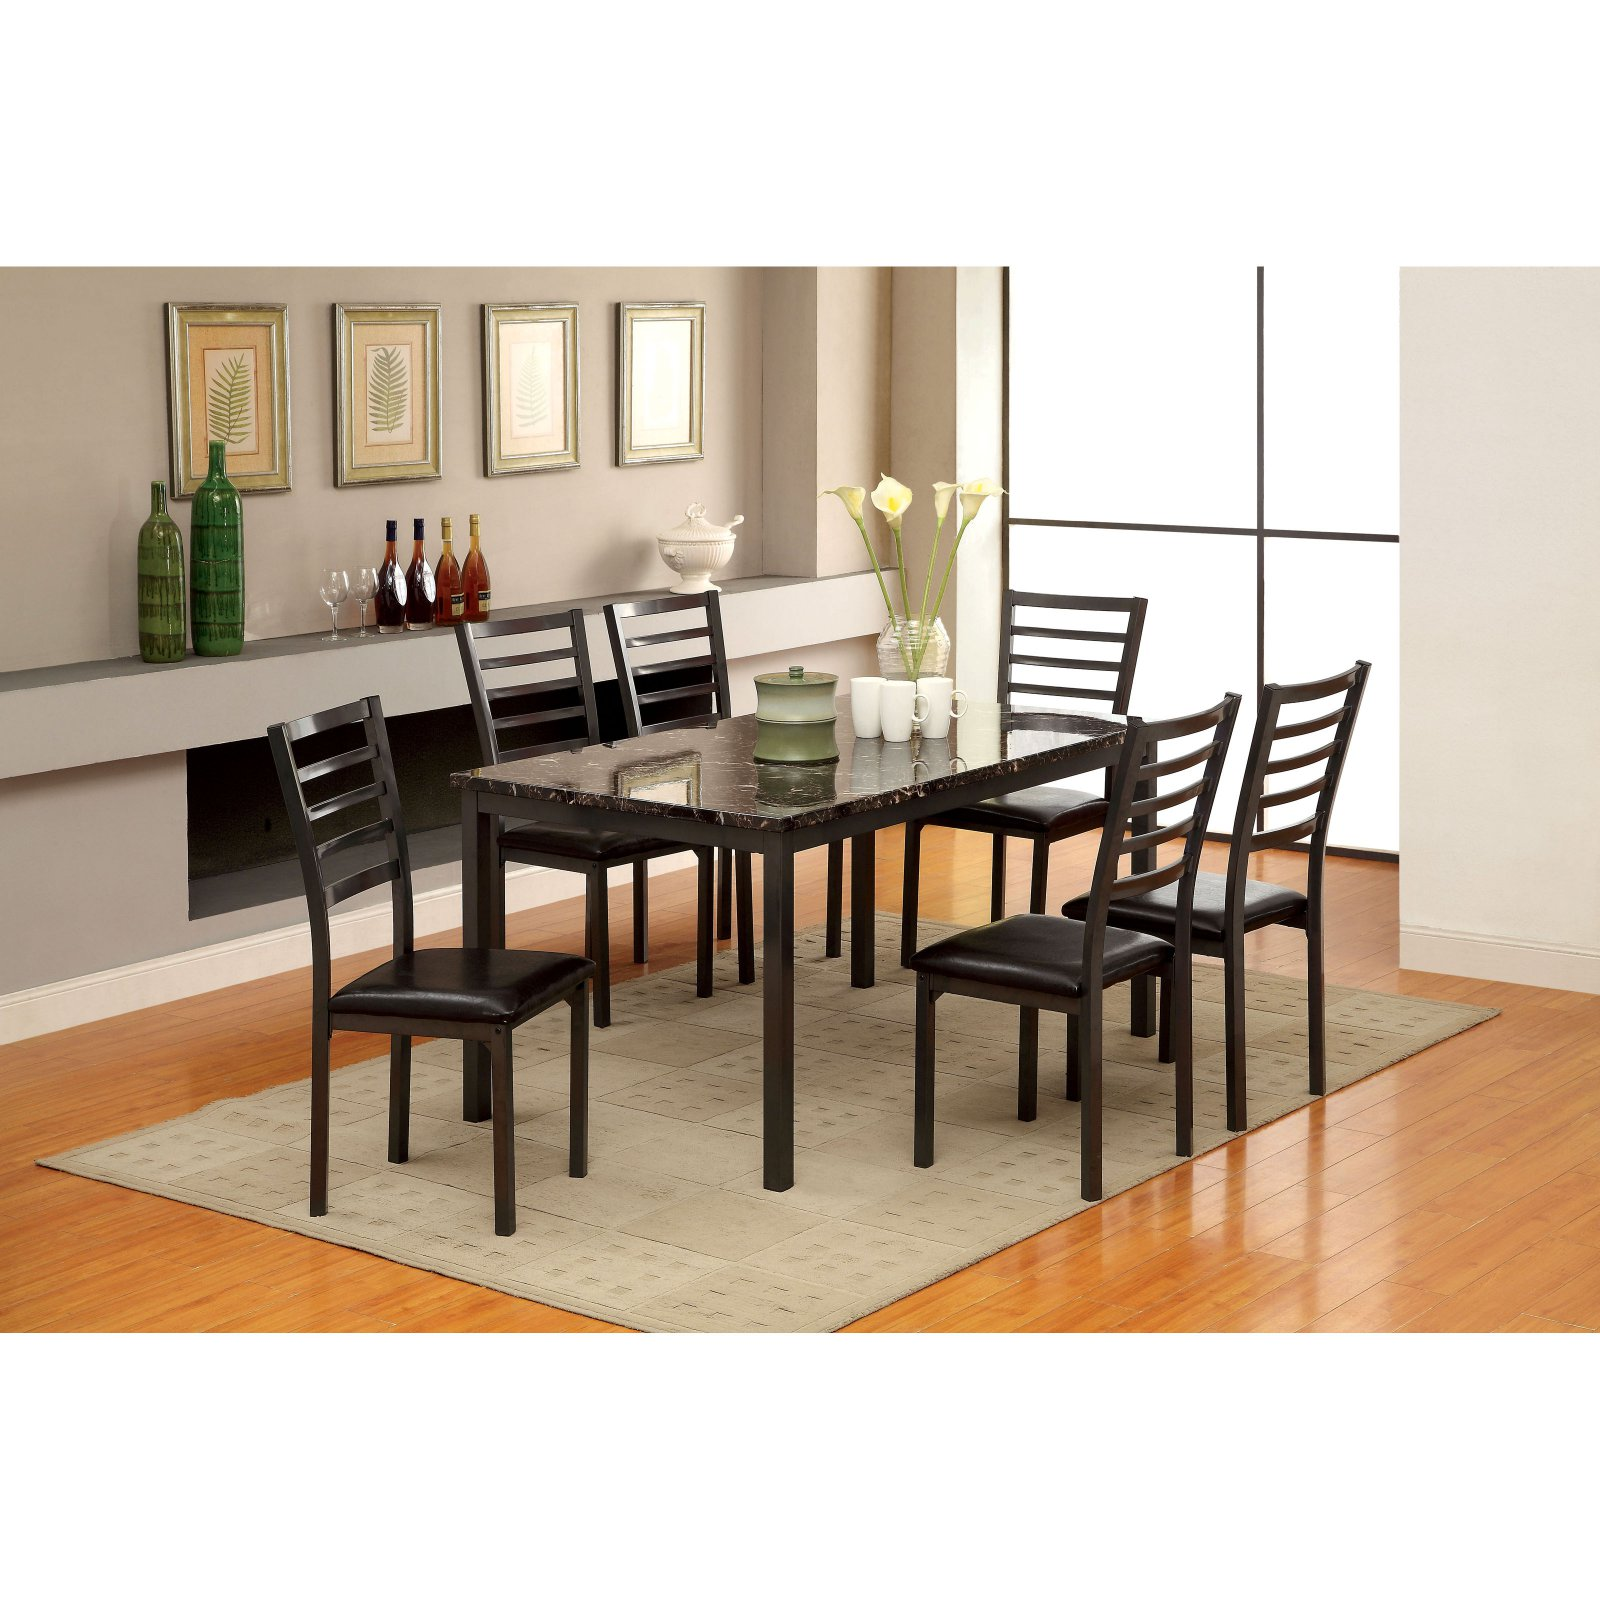 Furniture of America Katzman 60 in. Dining Table